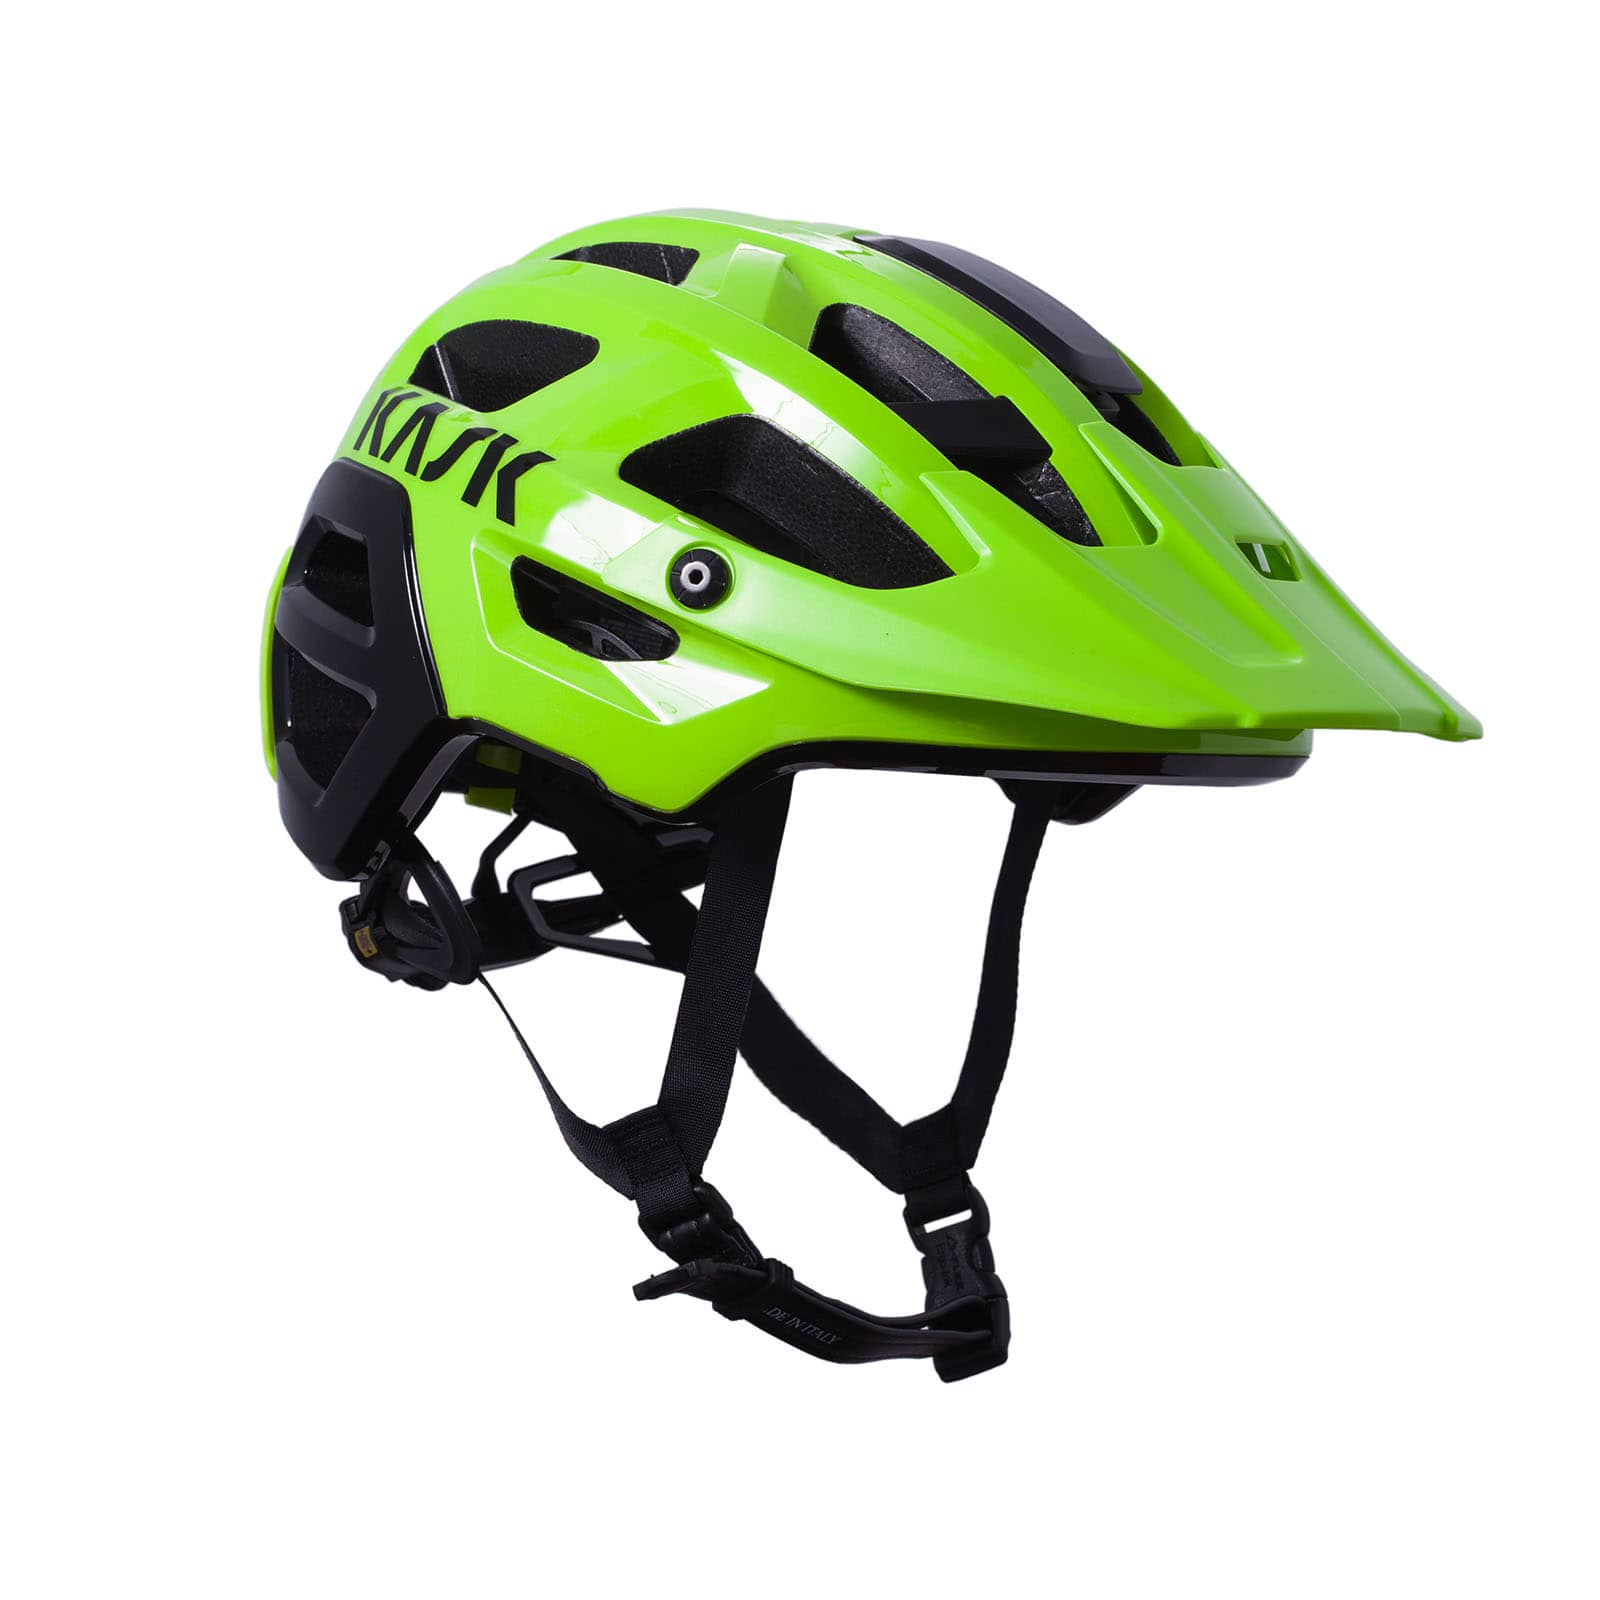 Mtb Helmet For Aggressive And Casual Off Road Riding Rex Kask Sport